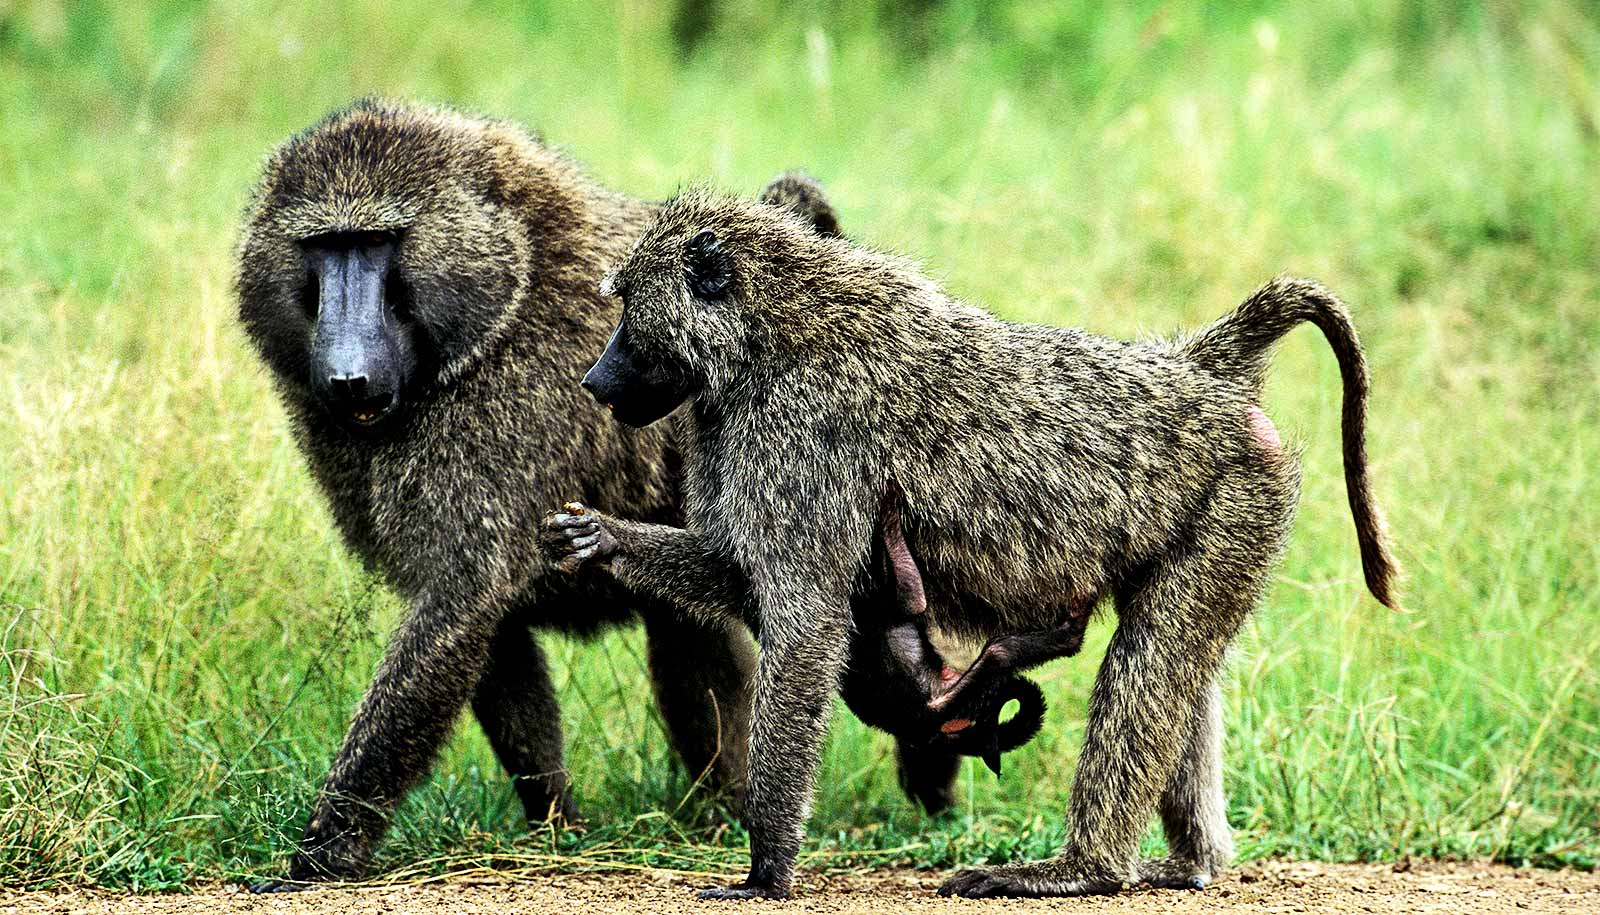 For male baboons, being on top accelerates aging